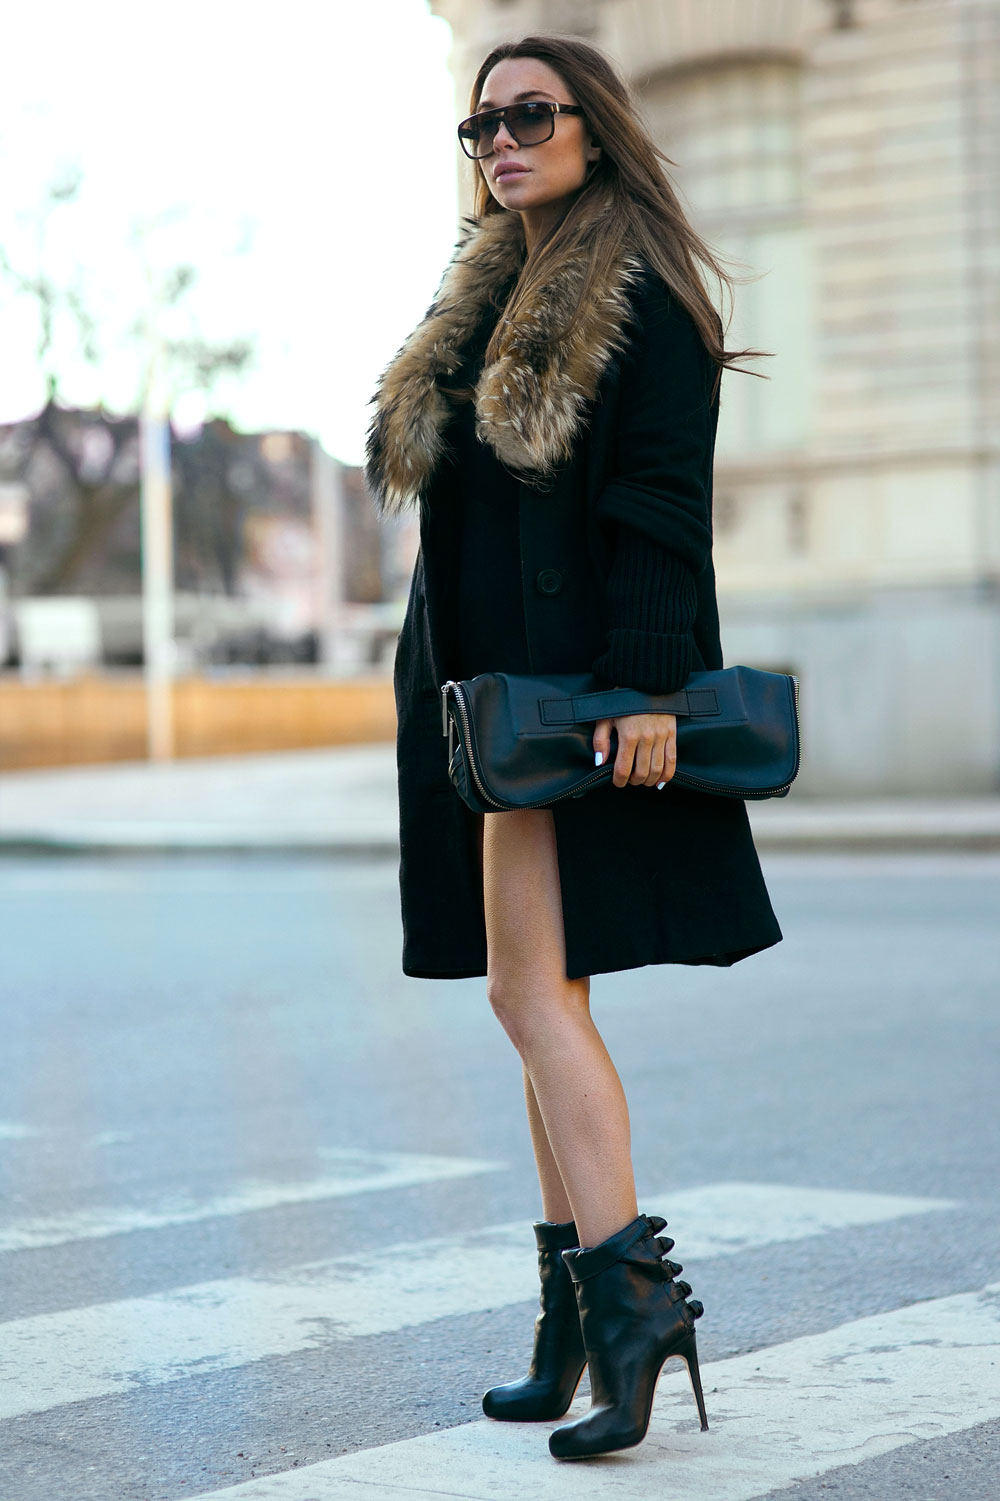 Winter Outfits And Ideas: Johanna Olsson is wearing ankle boots from Max Kibardin, black coat from Tara Jarmon and the bag is from 3.1 Philip Lim